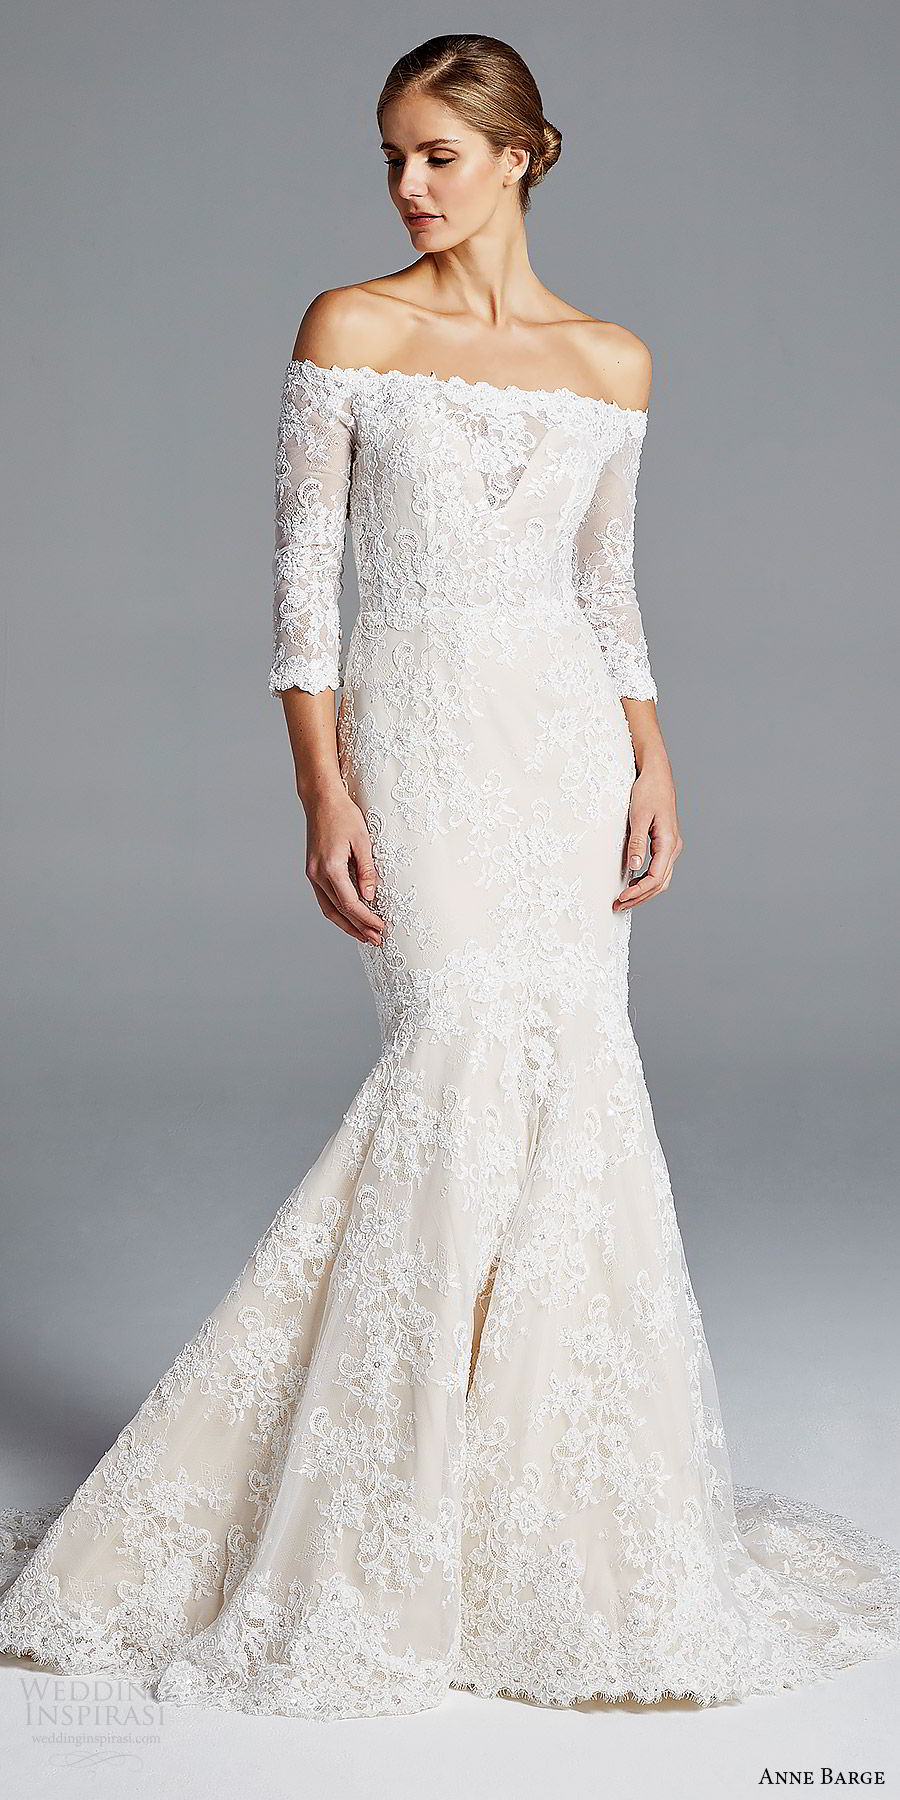 anne barge bridal spring 2019 3 quarter sleeves off shoulder illusion sweetheart lace mermaid wedding dress (loren) mv elegant romantic